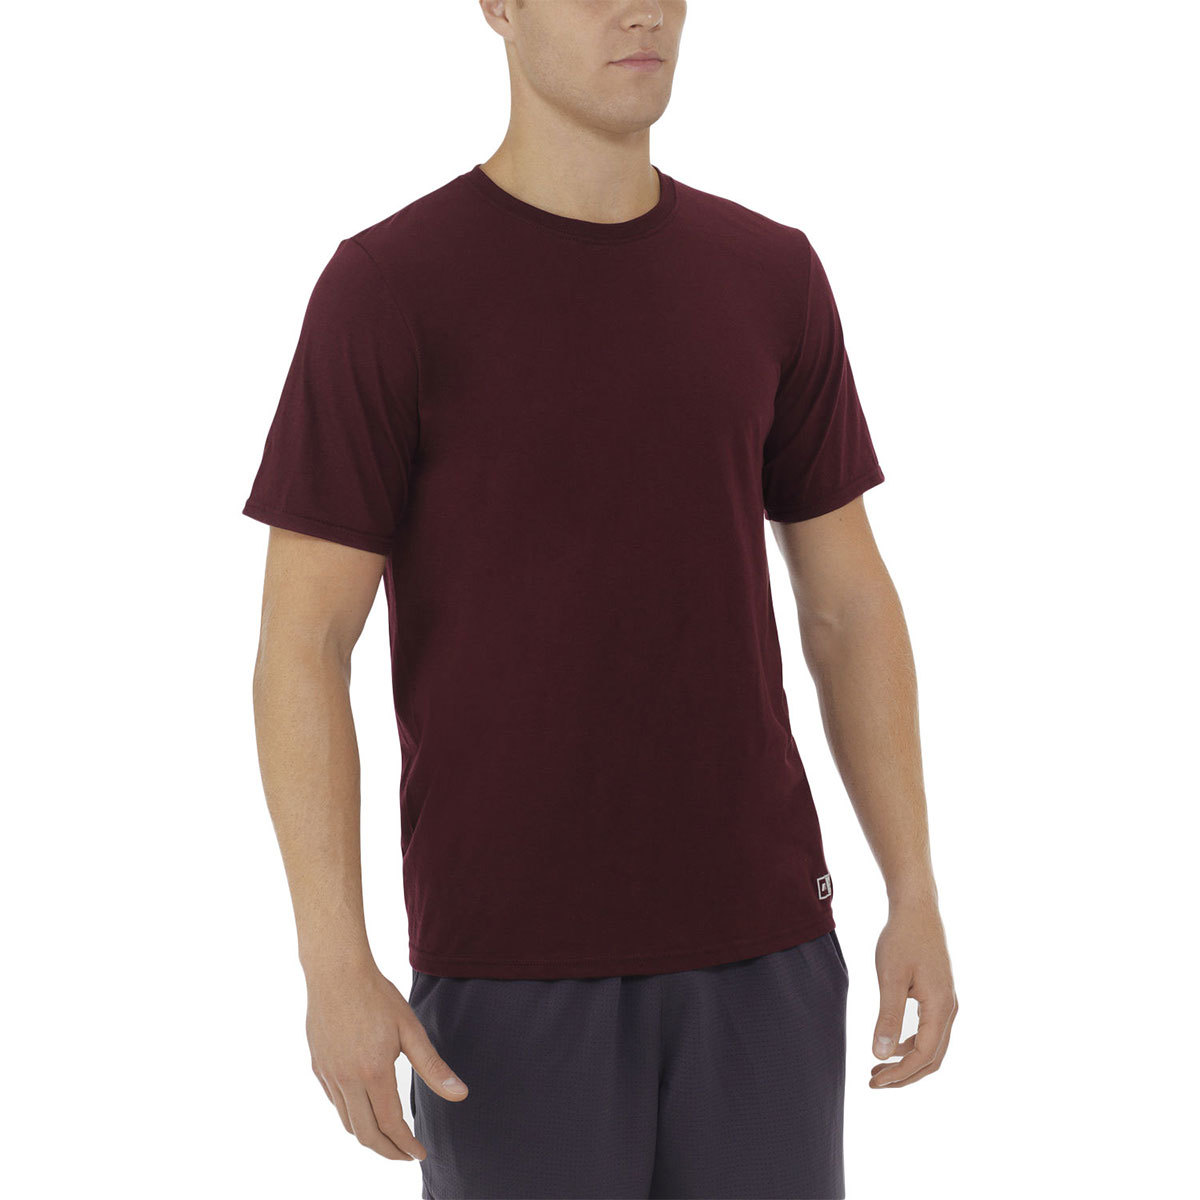 Russell Men's Essential Short-Sleeve Tee - Red, L